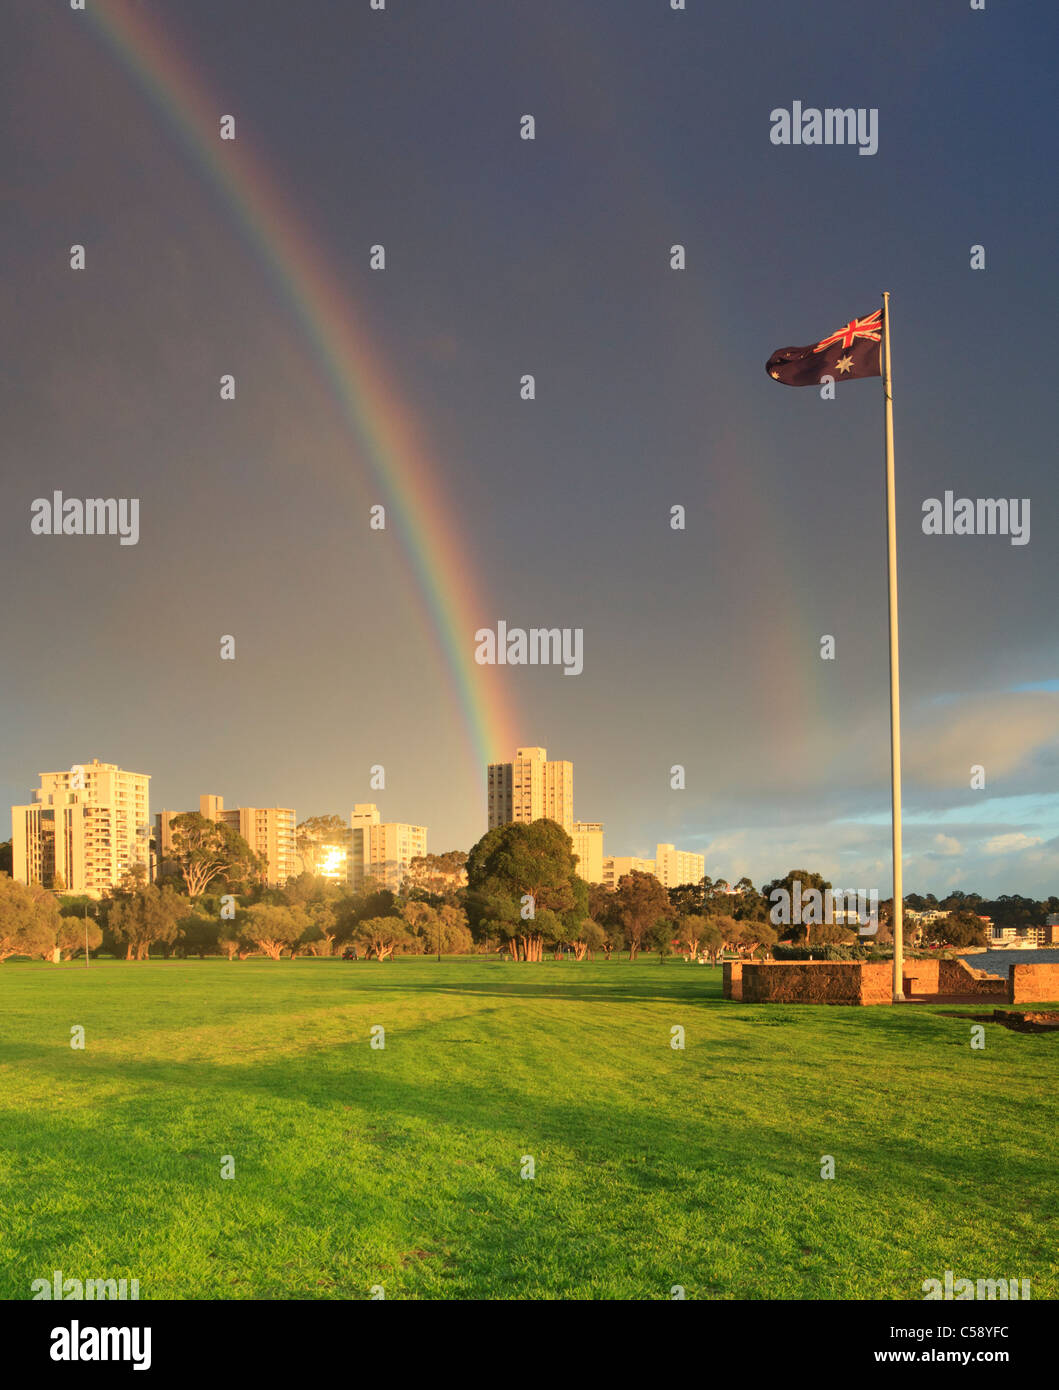 Arc-en-ciel sur South Perth et drapeau australien Photo Stock